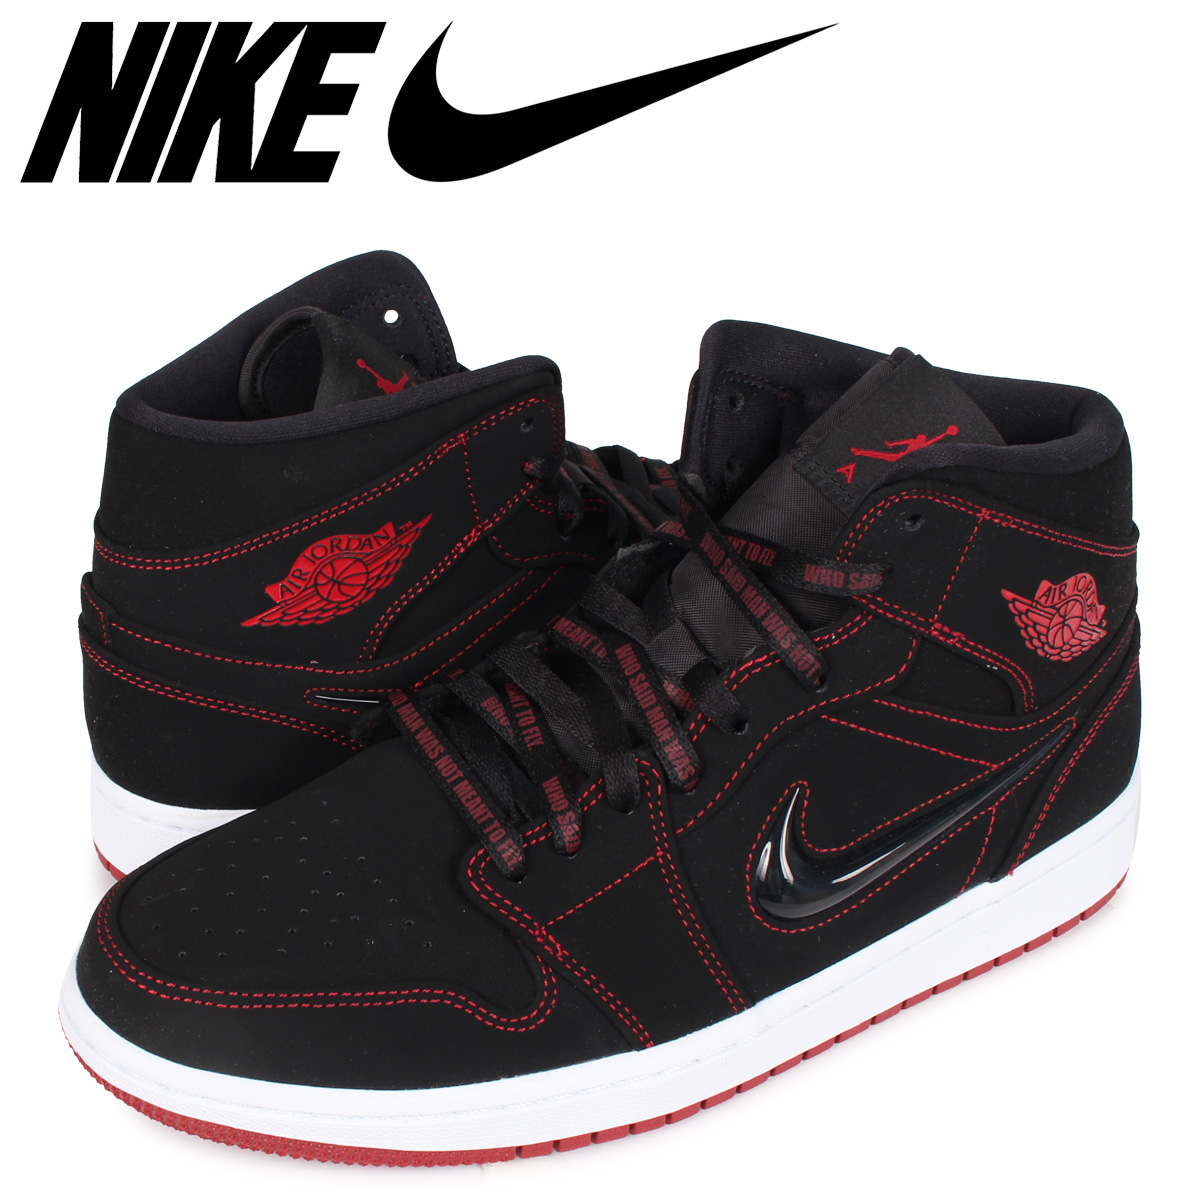 NIKE AIR JORDAN 1 MID FEARLESS COME FLY WITH ME ナイキ エアジョーダン1 スニーカー メンズ ブラック 黒 CK5665-062 [3/9 新入荷]